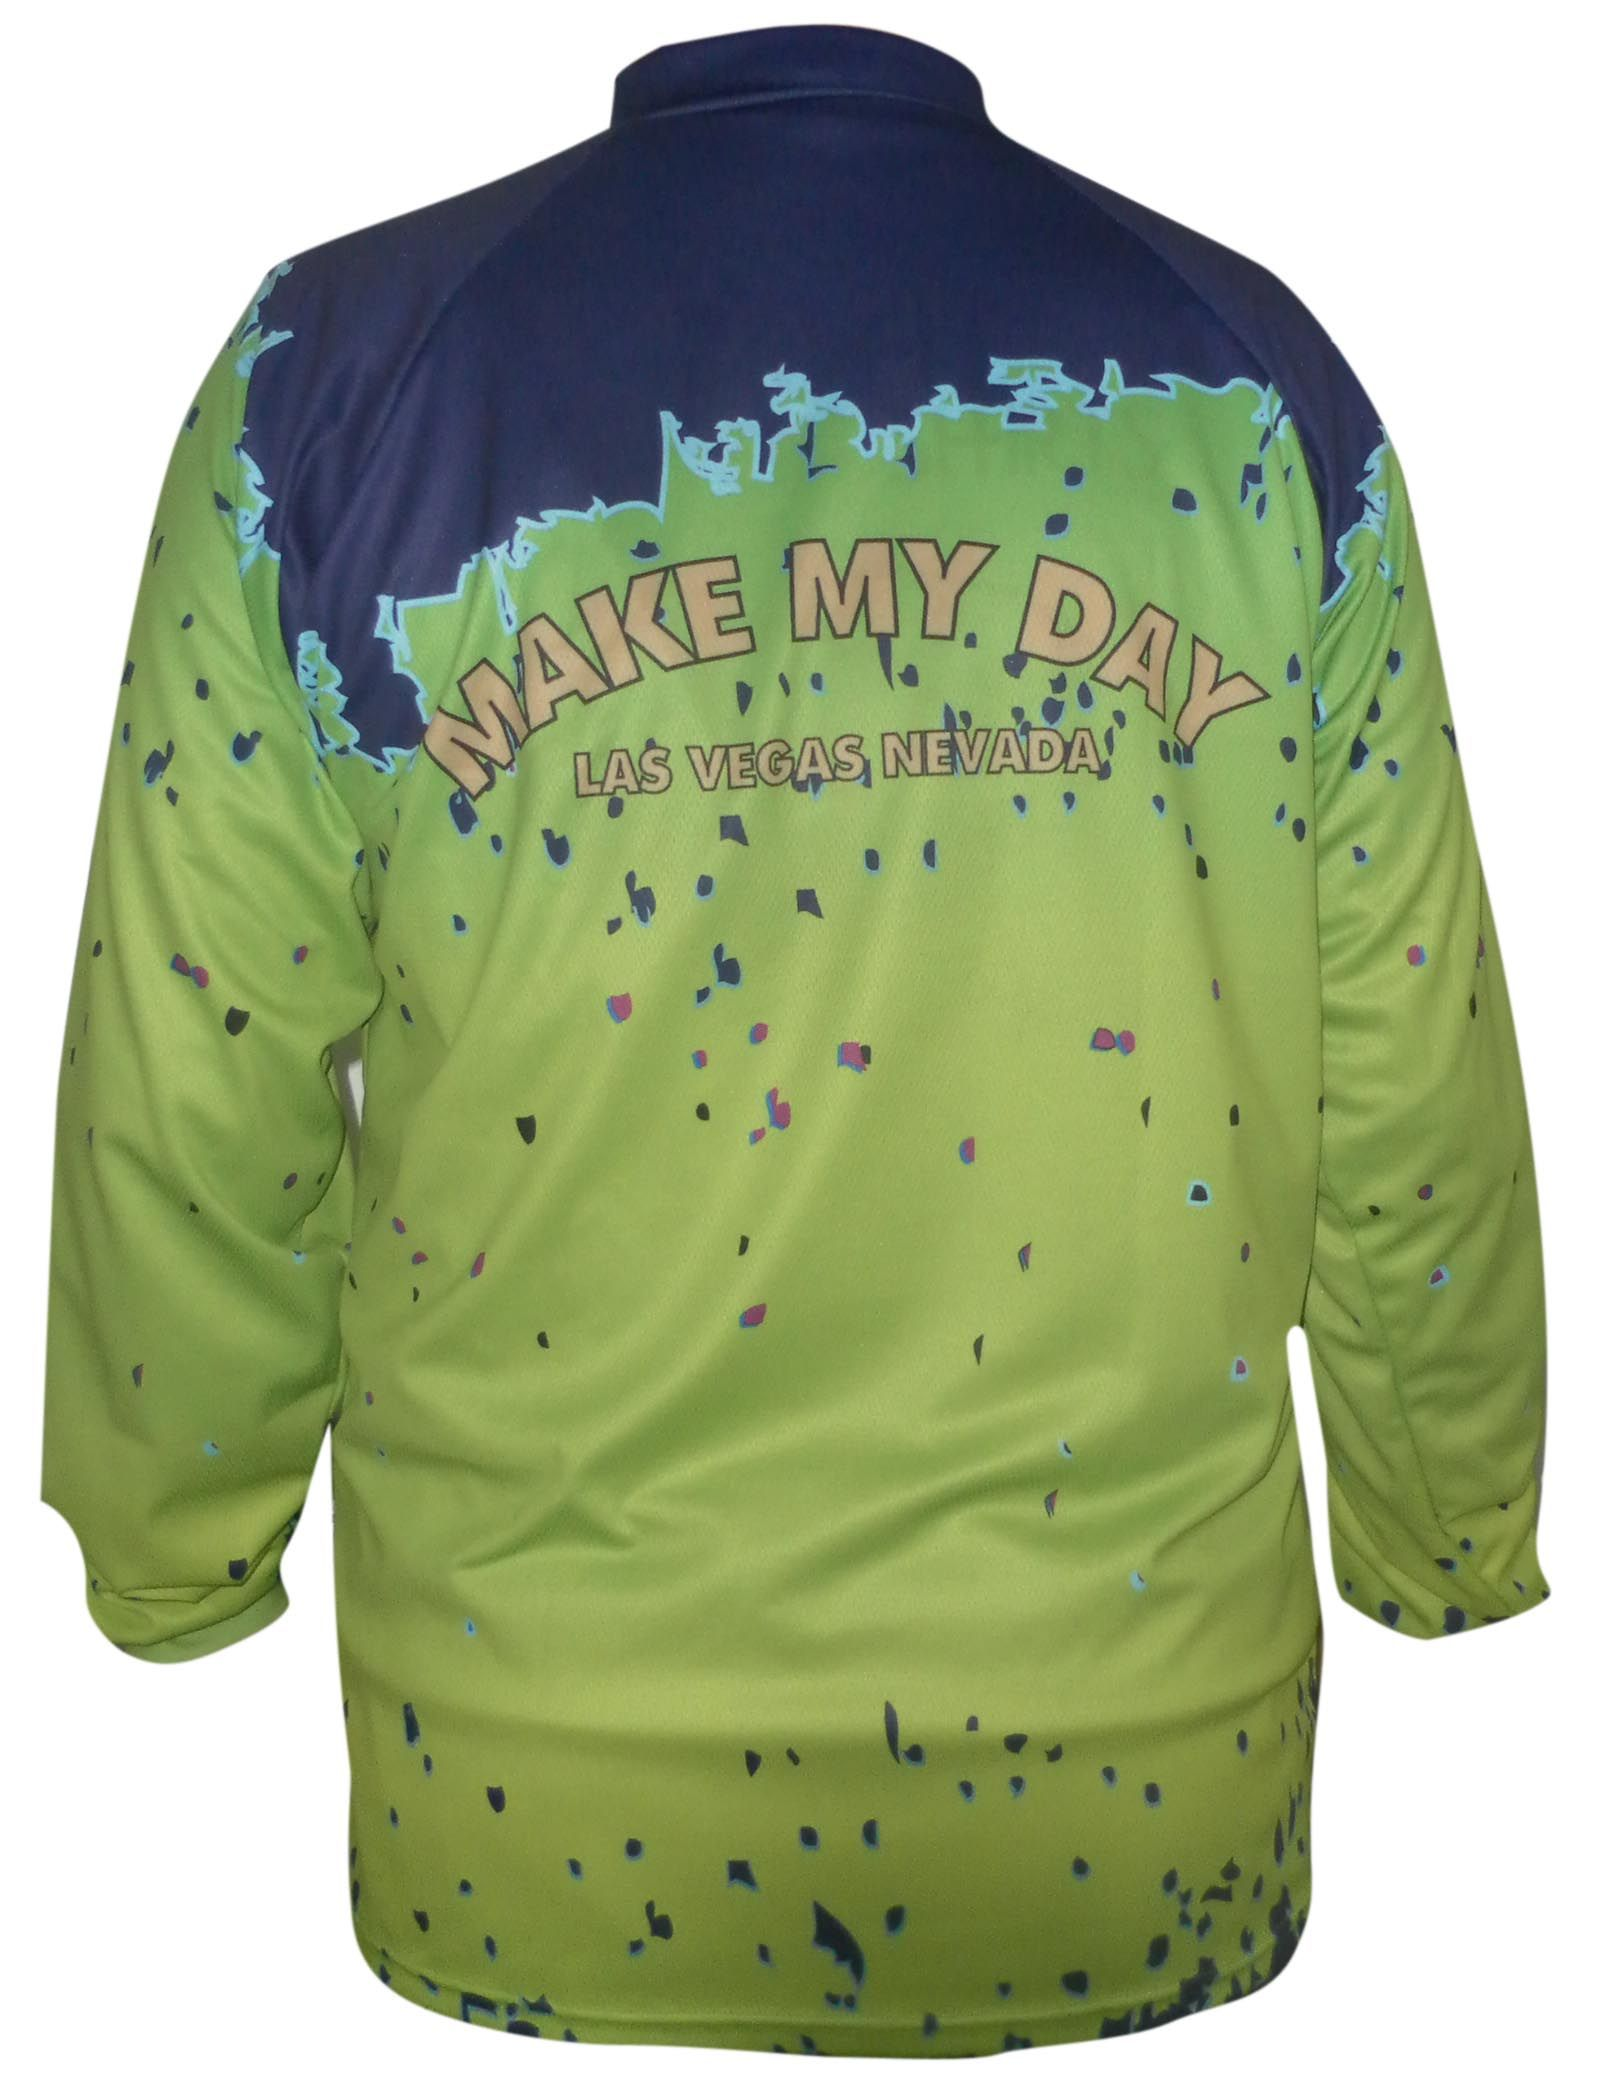 Team make my day 39 s tournament fishing shirt taking part in for Tournament fishing shirts